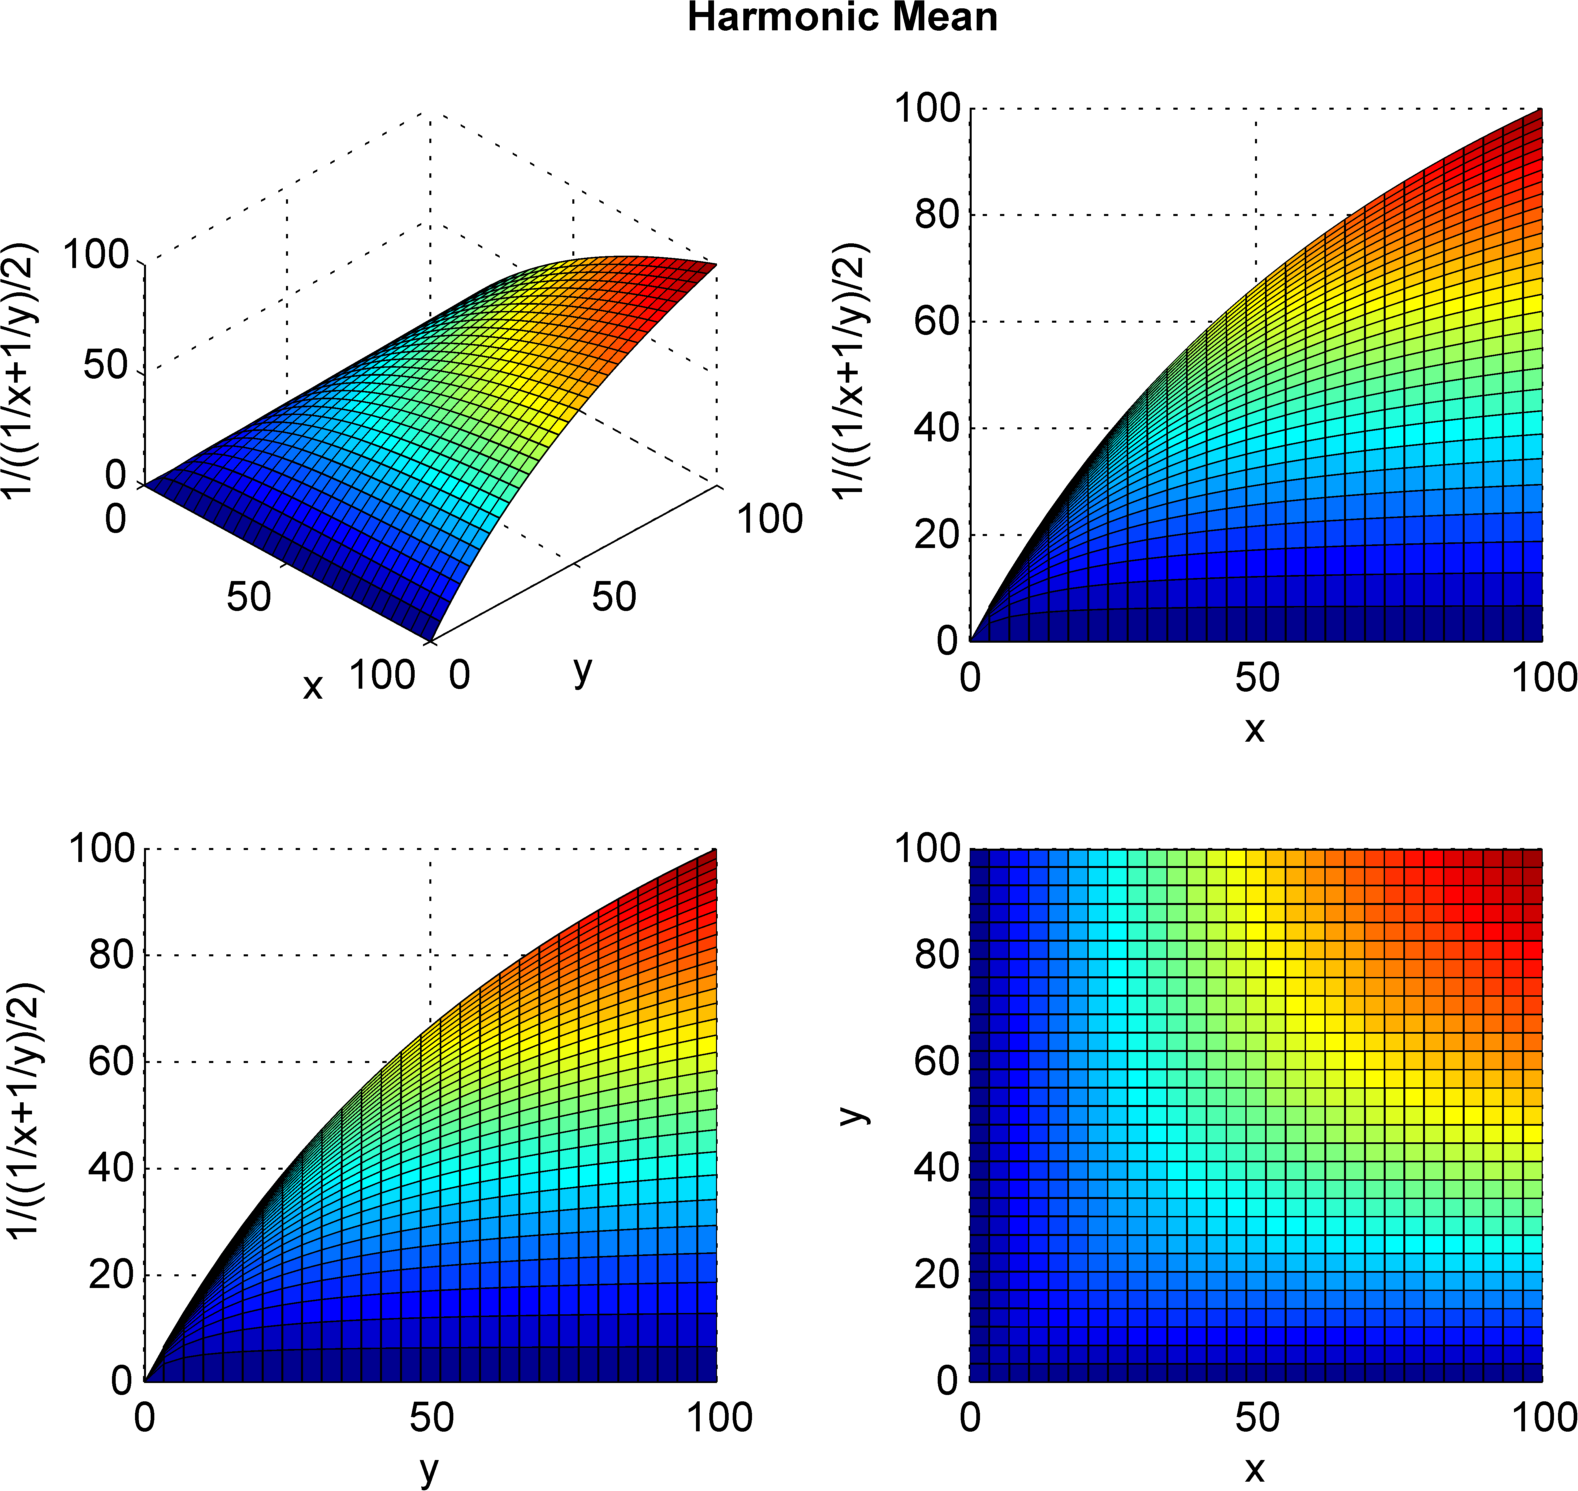 File:Harmonic mean 3D plot from 0 to 100 png - Wikimedia Commons